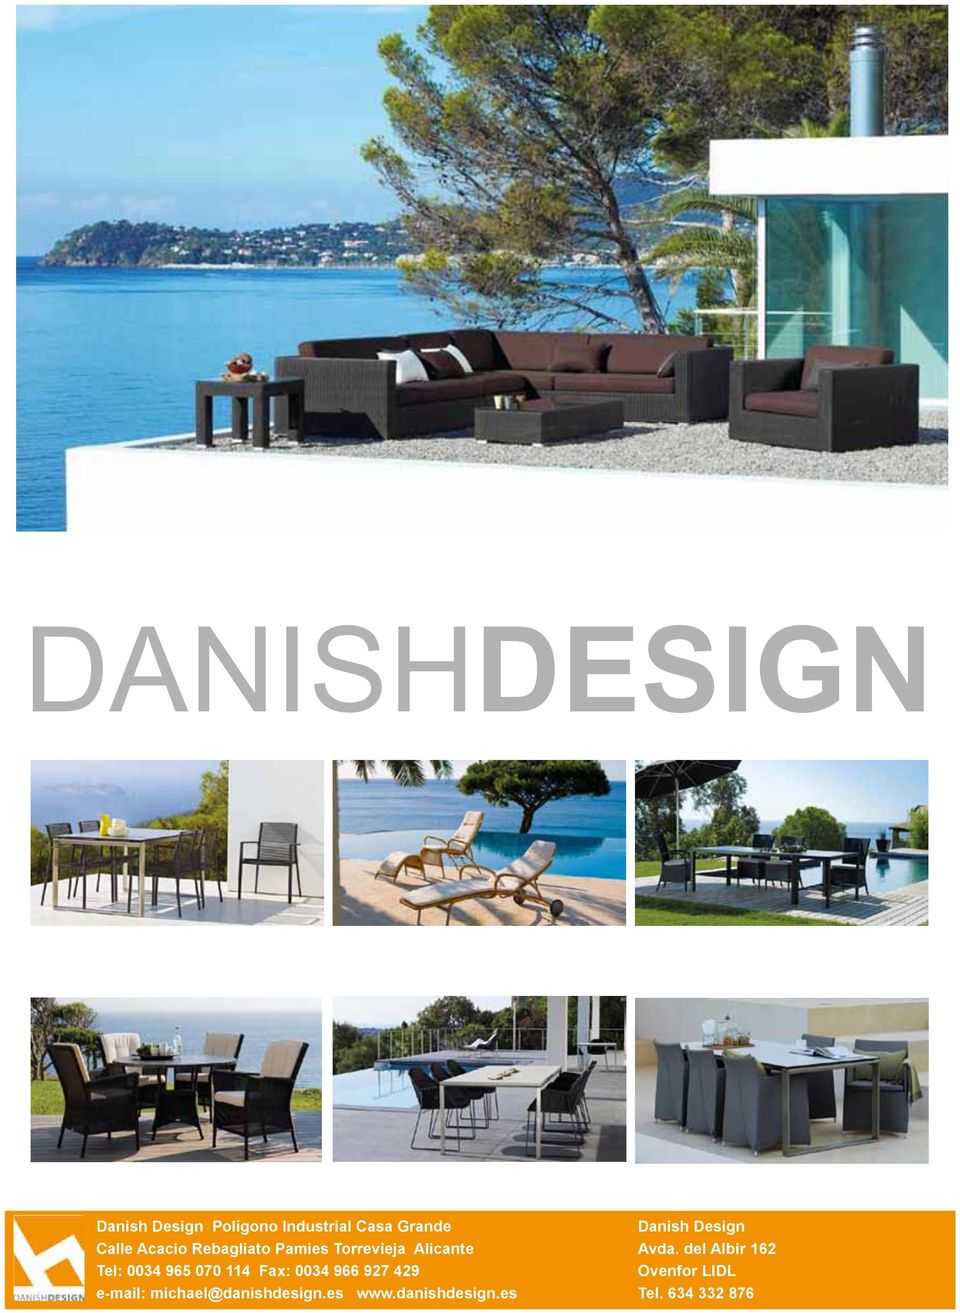 Fax: 0034 966 927 429 e-mail: michael@danishdesign.es www.